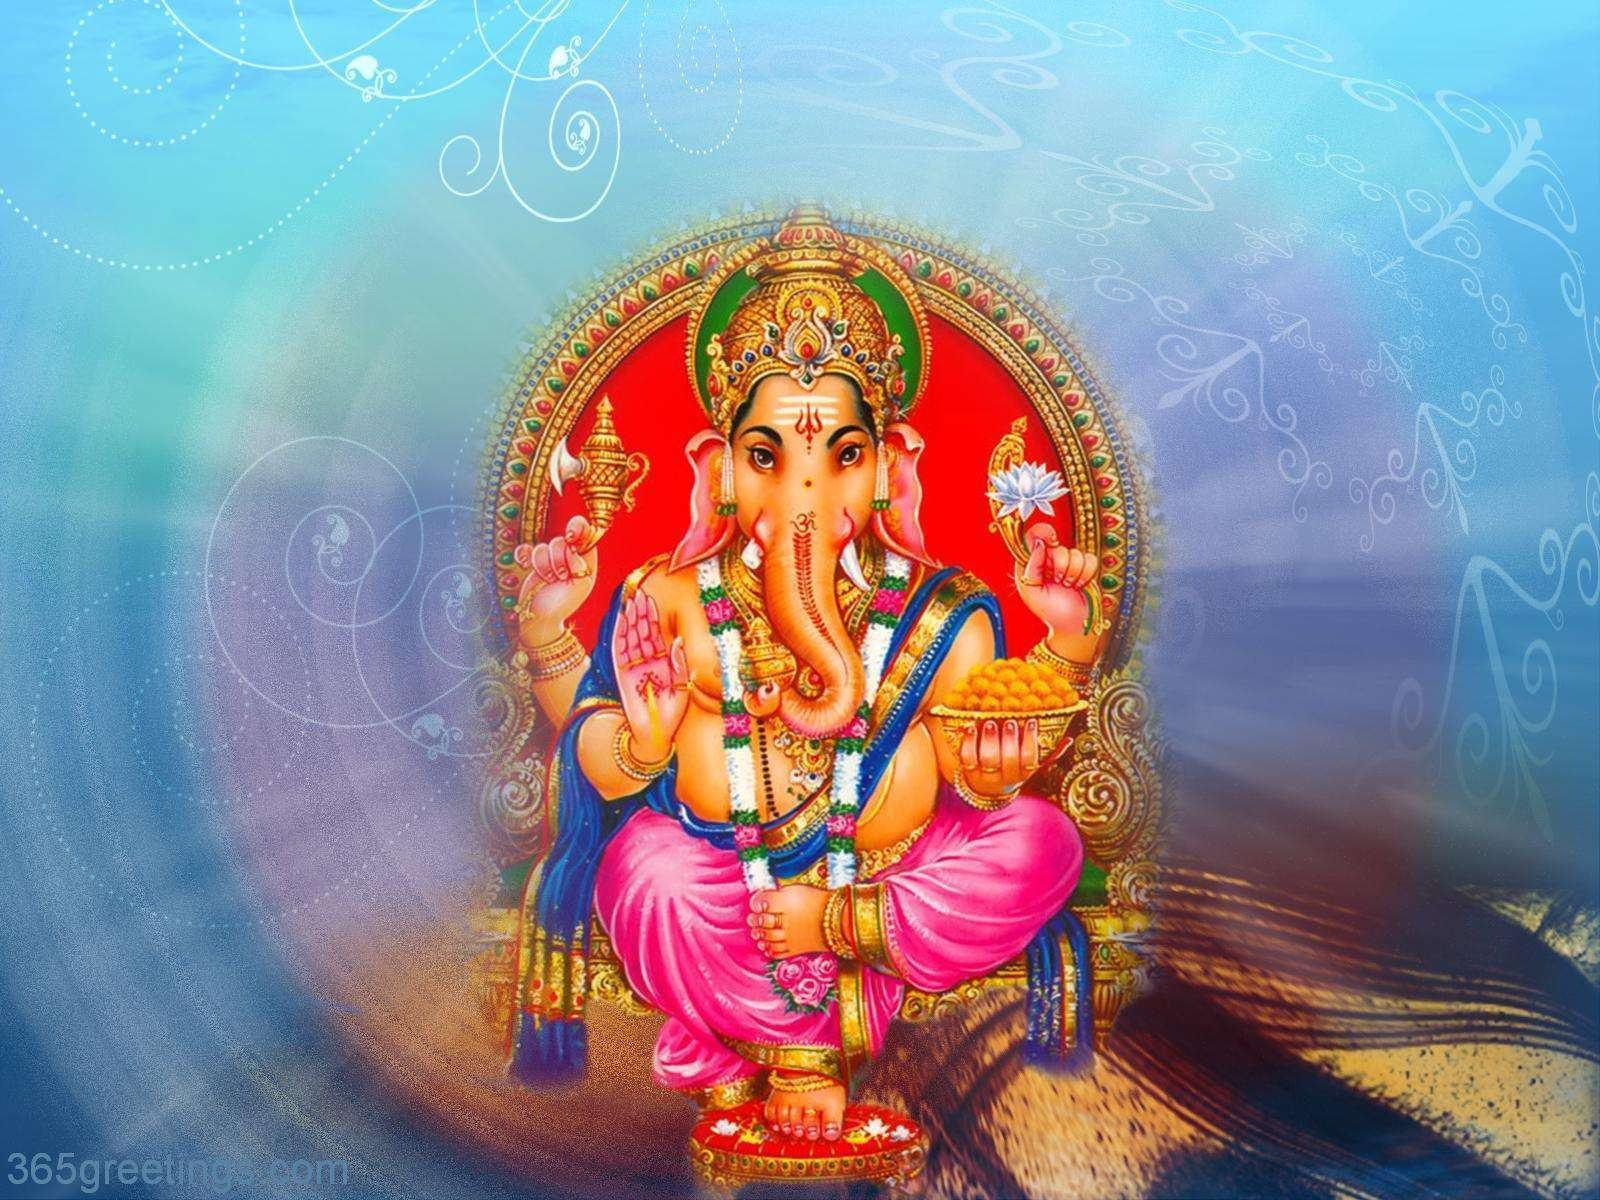 Lord Ganesha Hindu God HD God Image,Wallpapers & Backgrounds hin